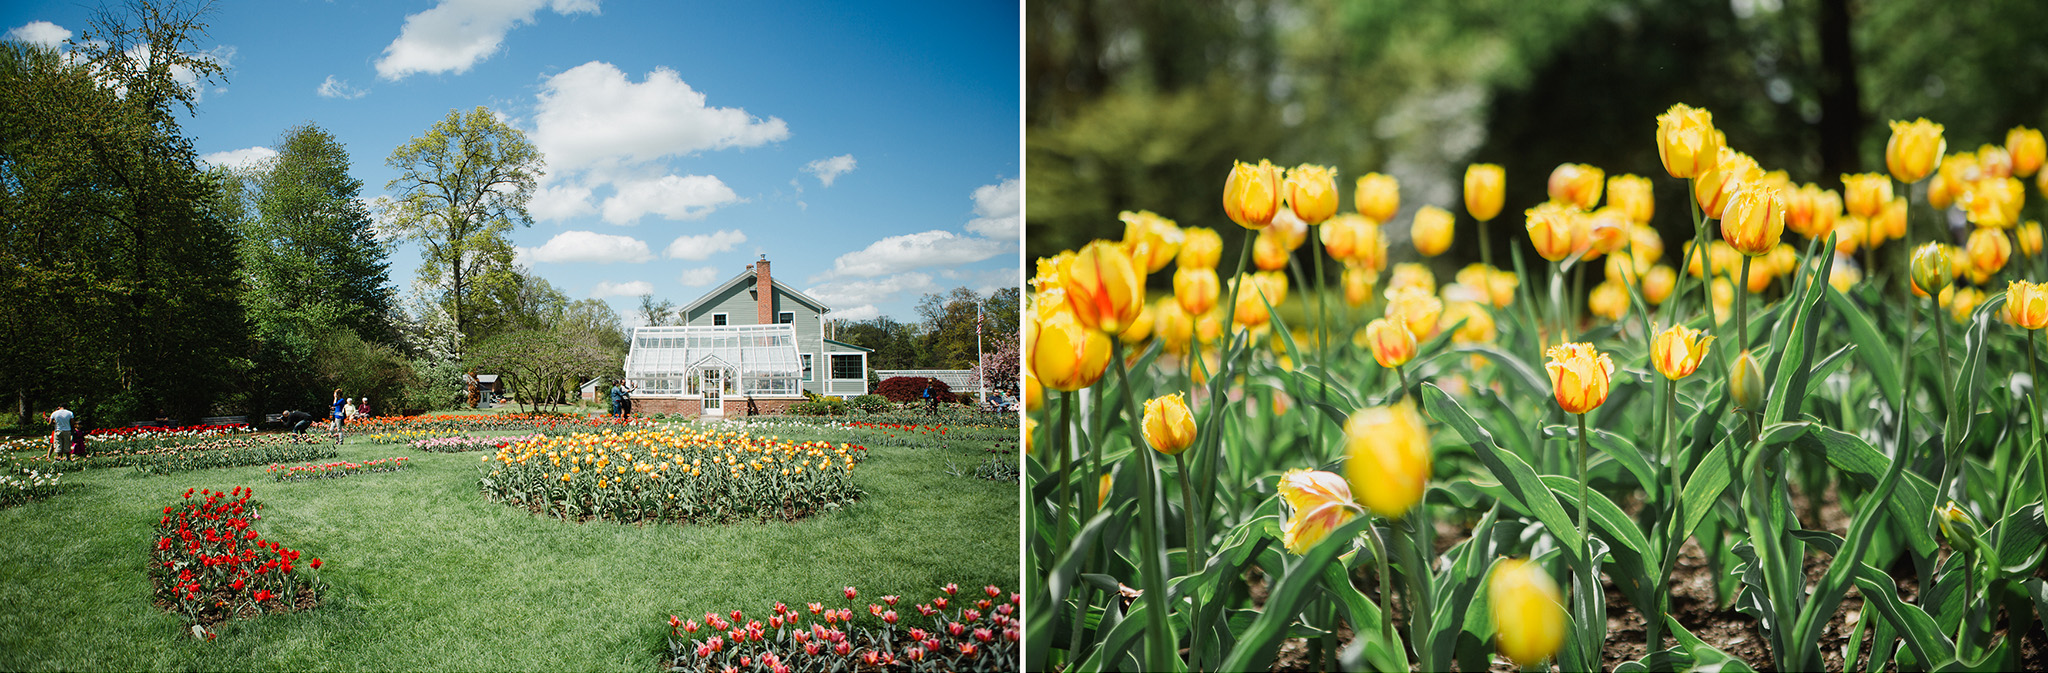 May 6: Let's talk about Connecticut tulips.